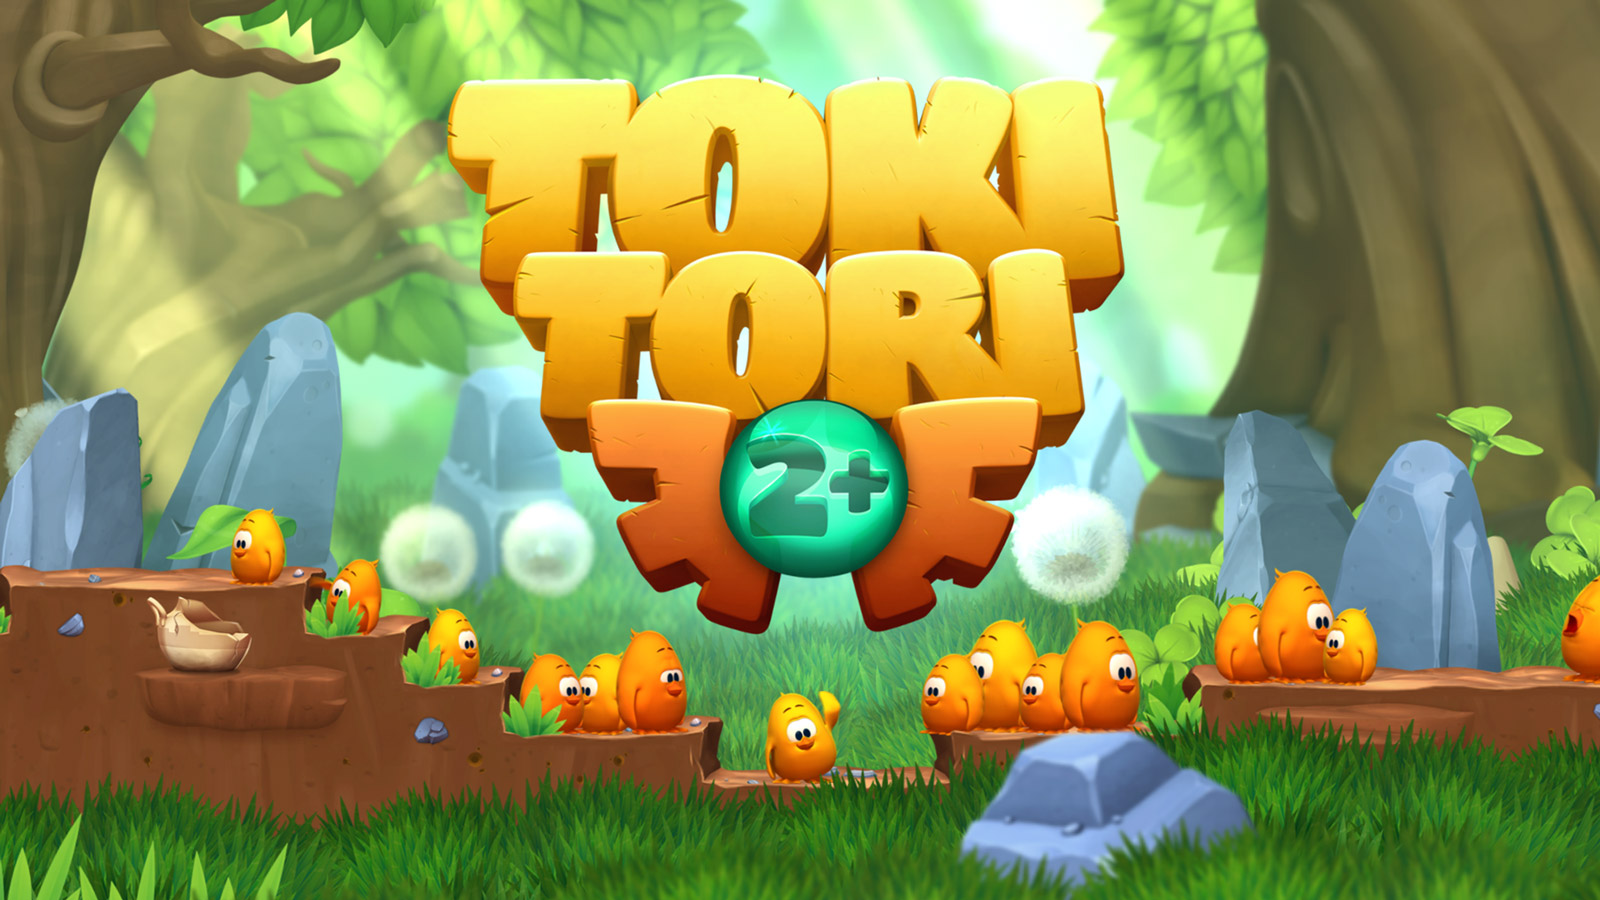 Free Toki Tori 2 Wallpaper in 1600x900